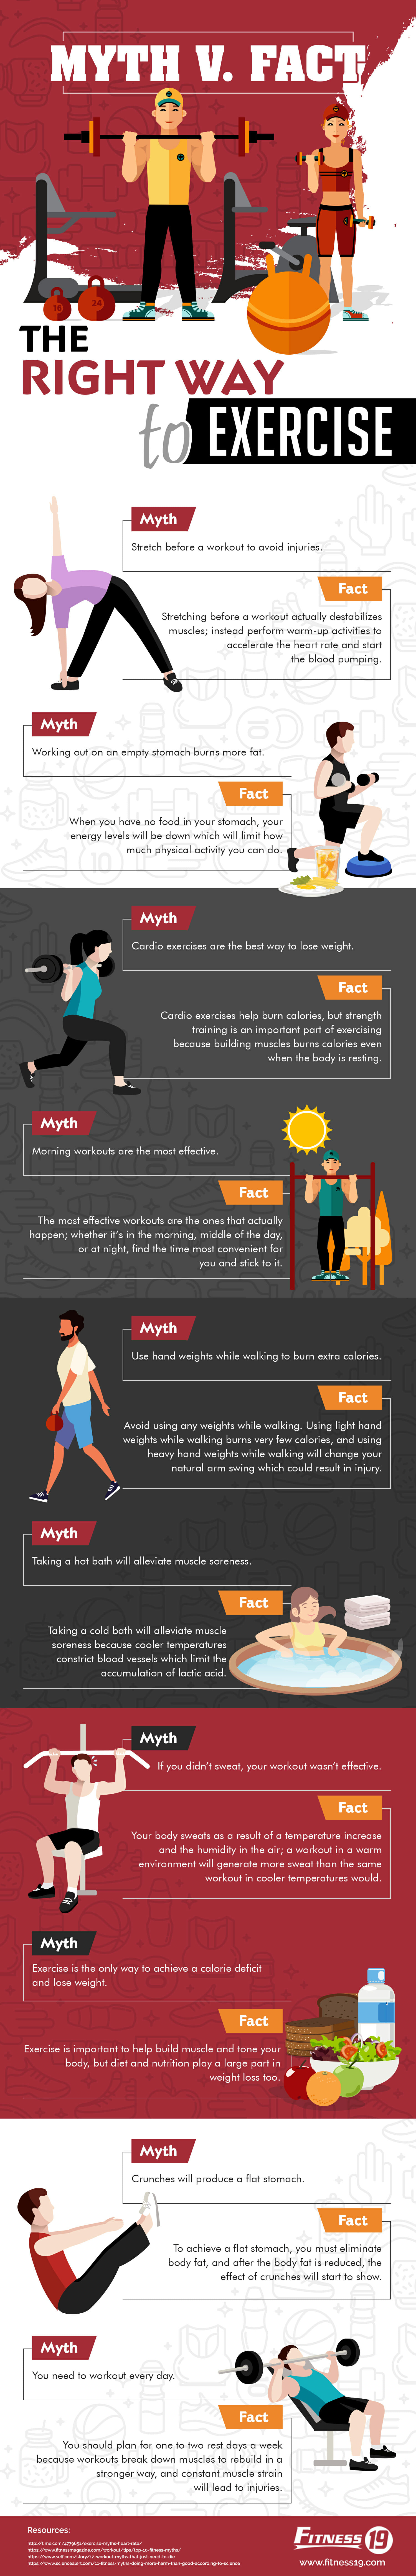 Getting Fit the Right Way: 10 Popular Myths Vs Facts - Infographic